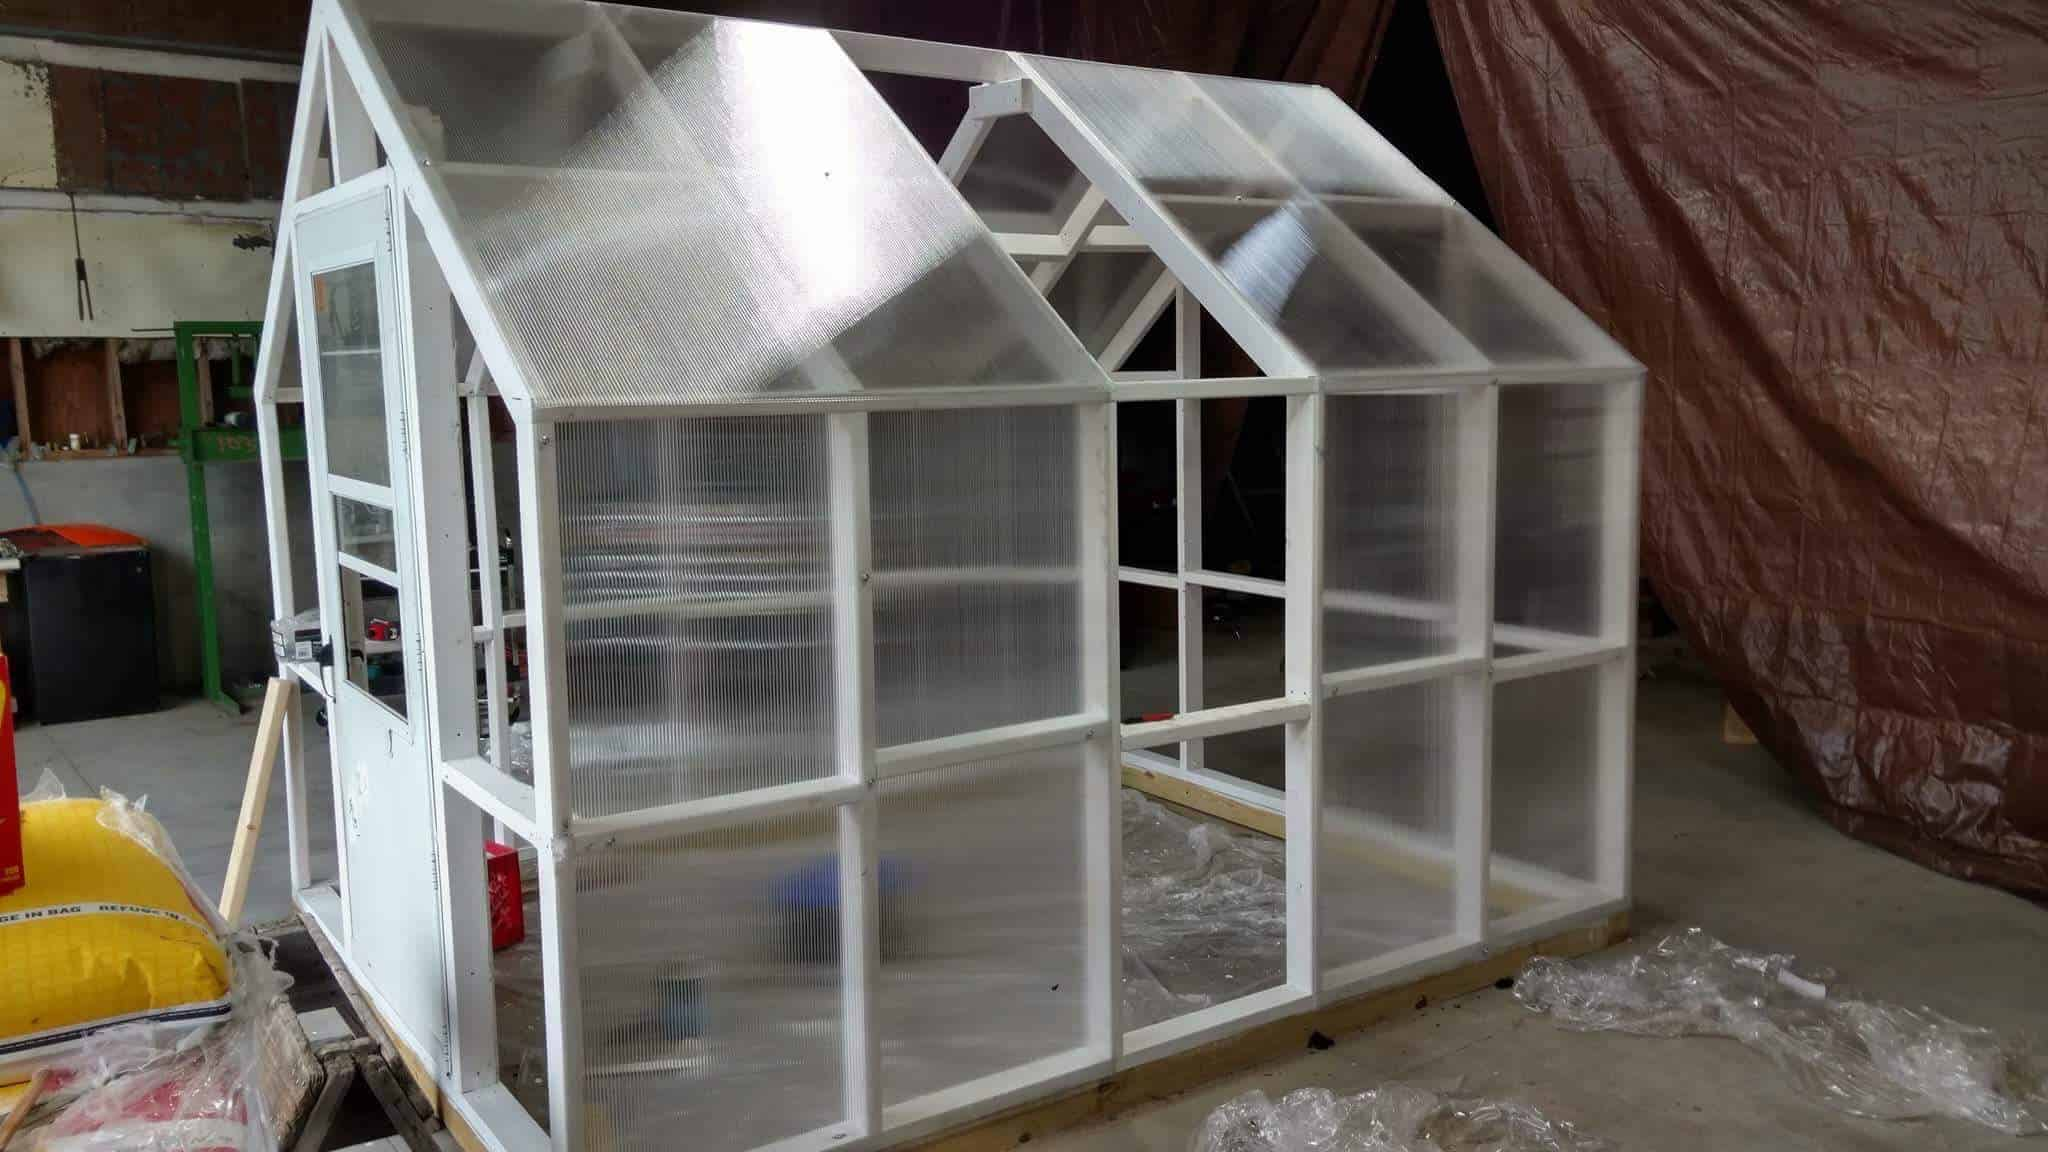 Polycarbonate plastic sheeting is being installed on the greenhouse and the frame has been painted white.